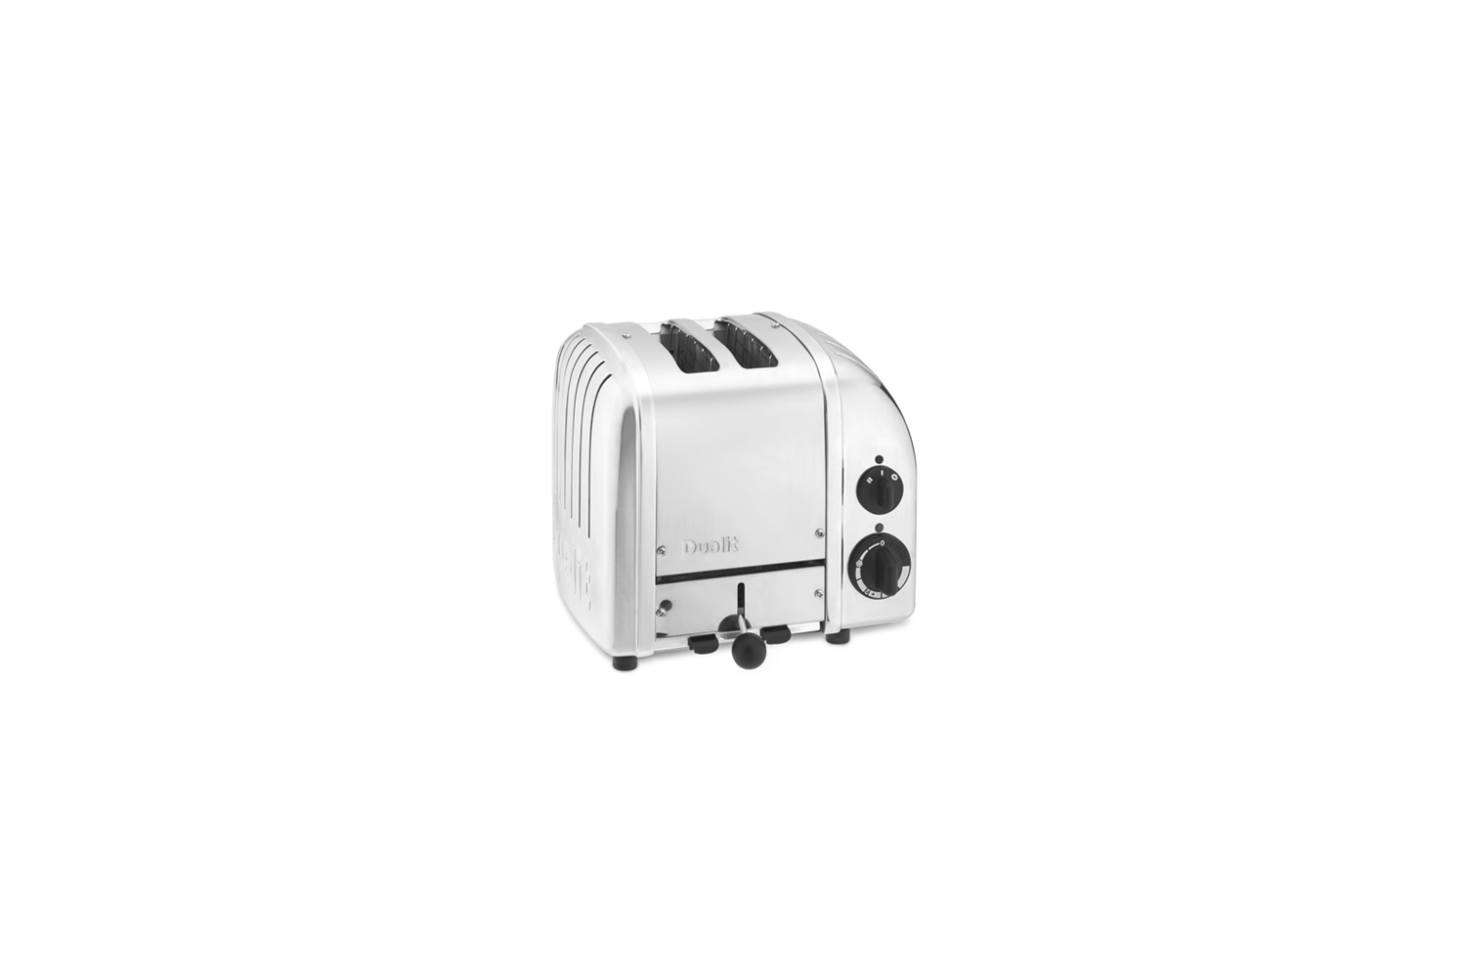 The Dualit 2-Slice Countertop Toaster in stainless steel is $259.95 at Williams-Sonoma.